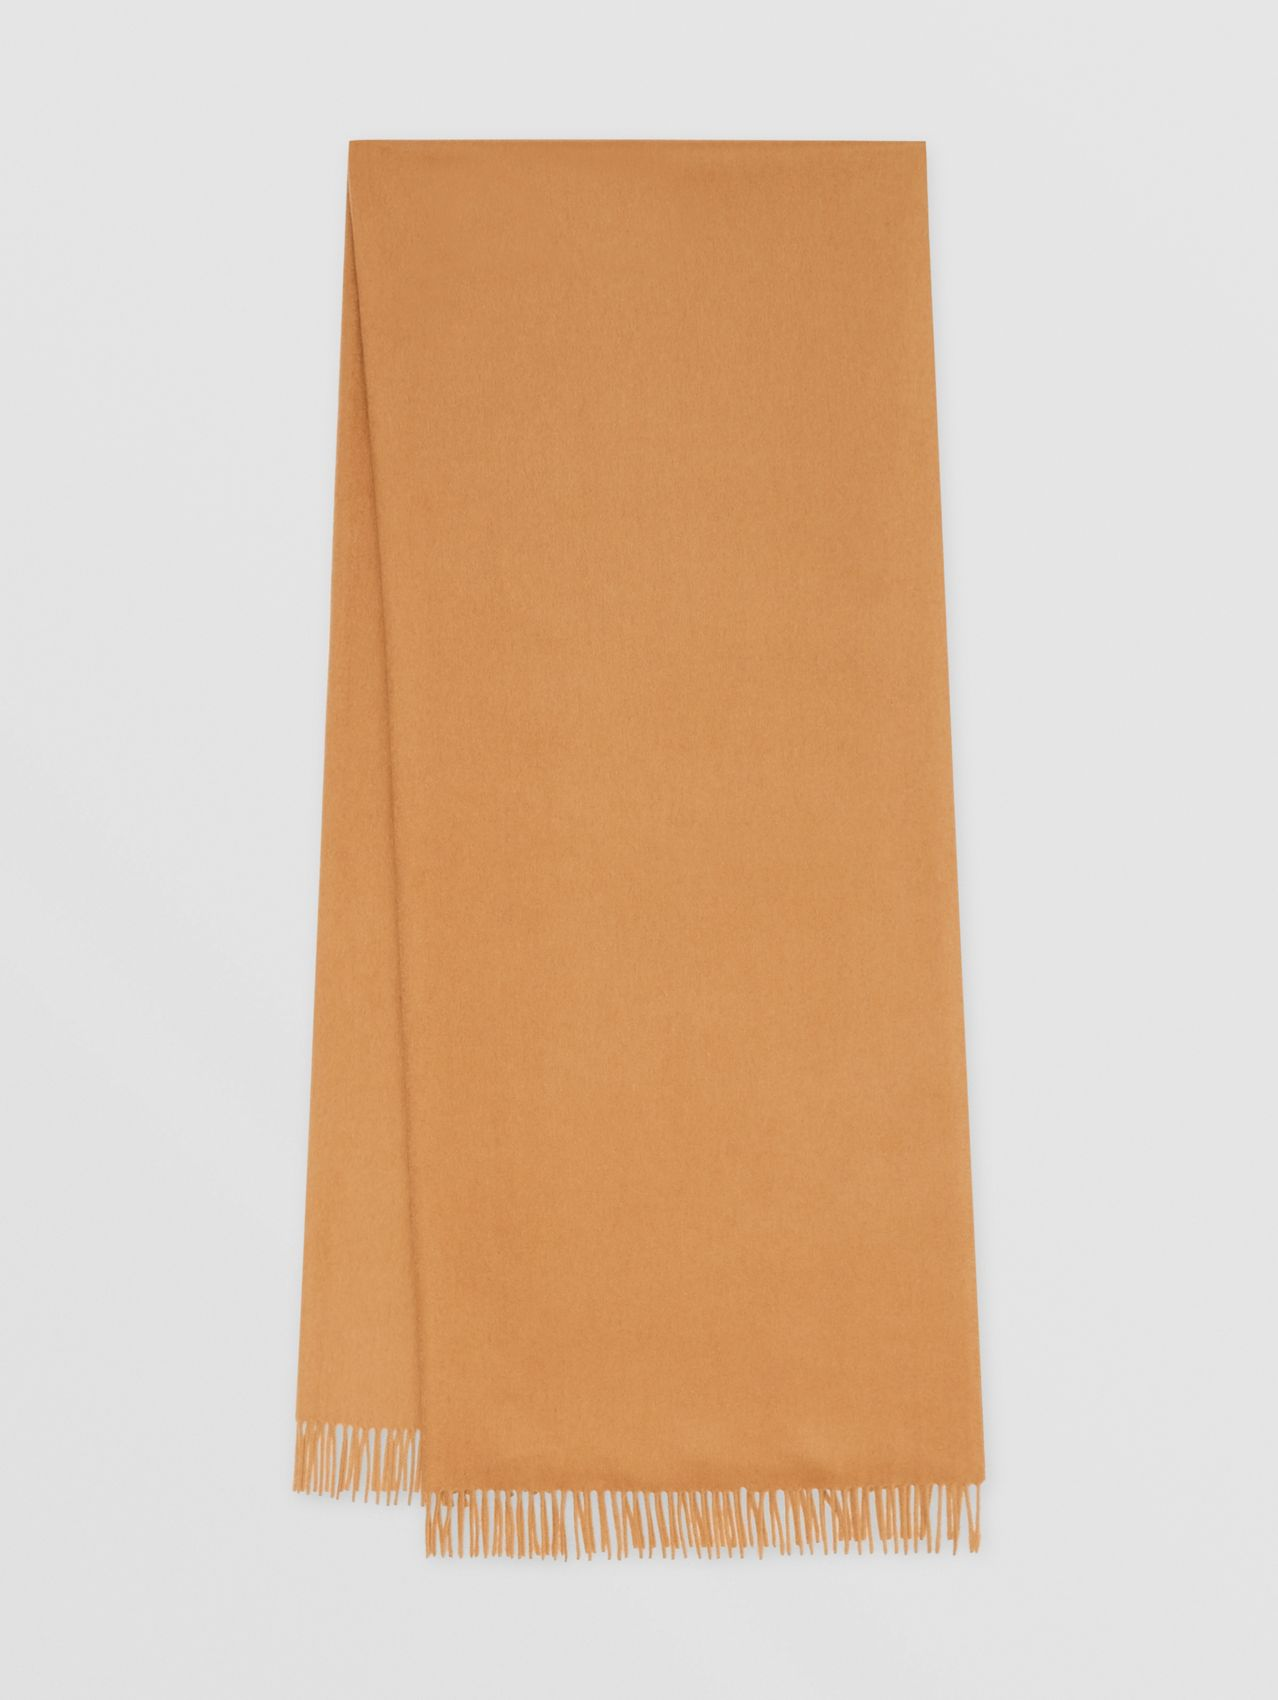 Monogram Motif Regenerated Cashmere Wool Scarf in Beige